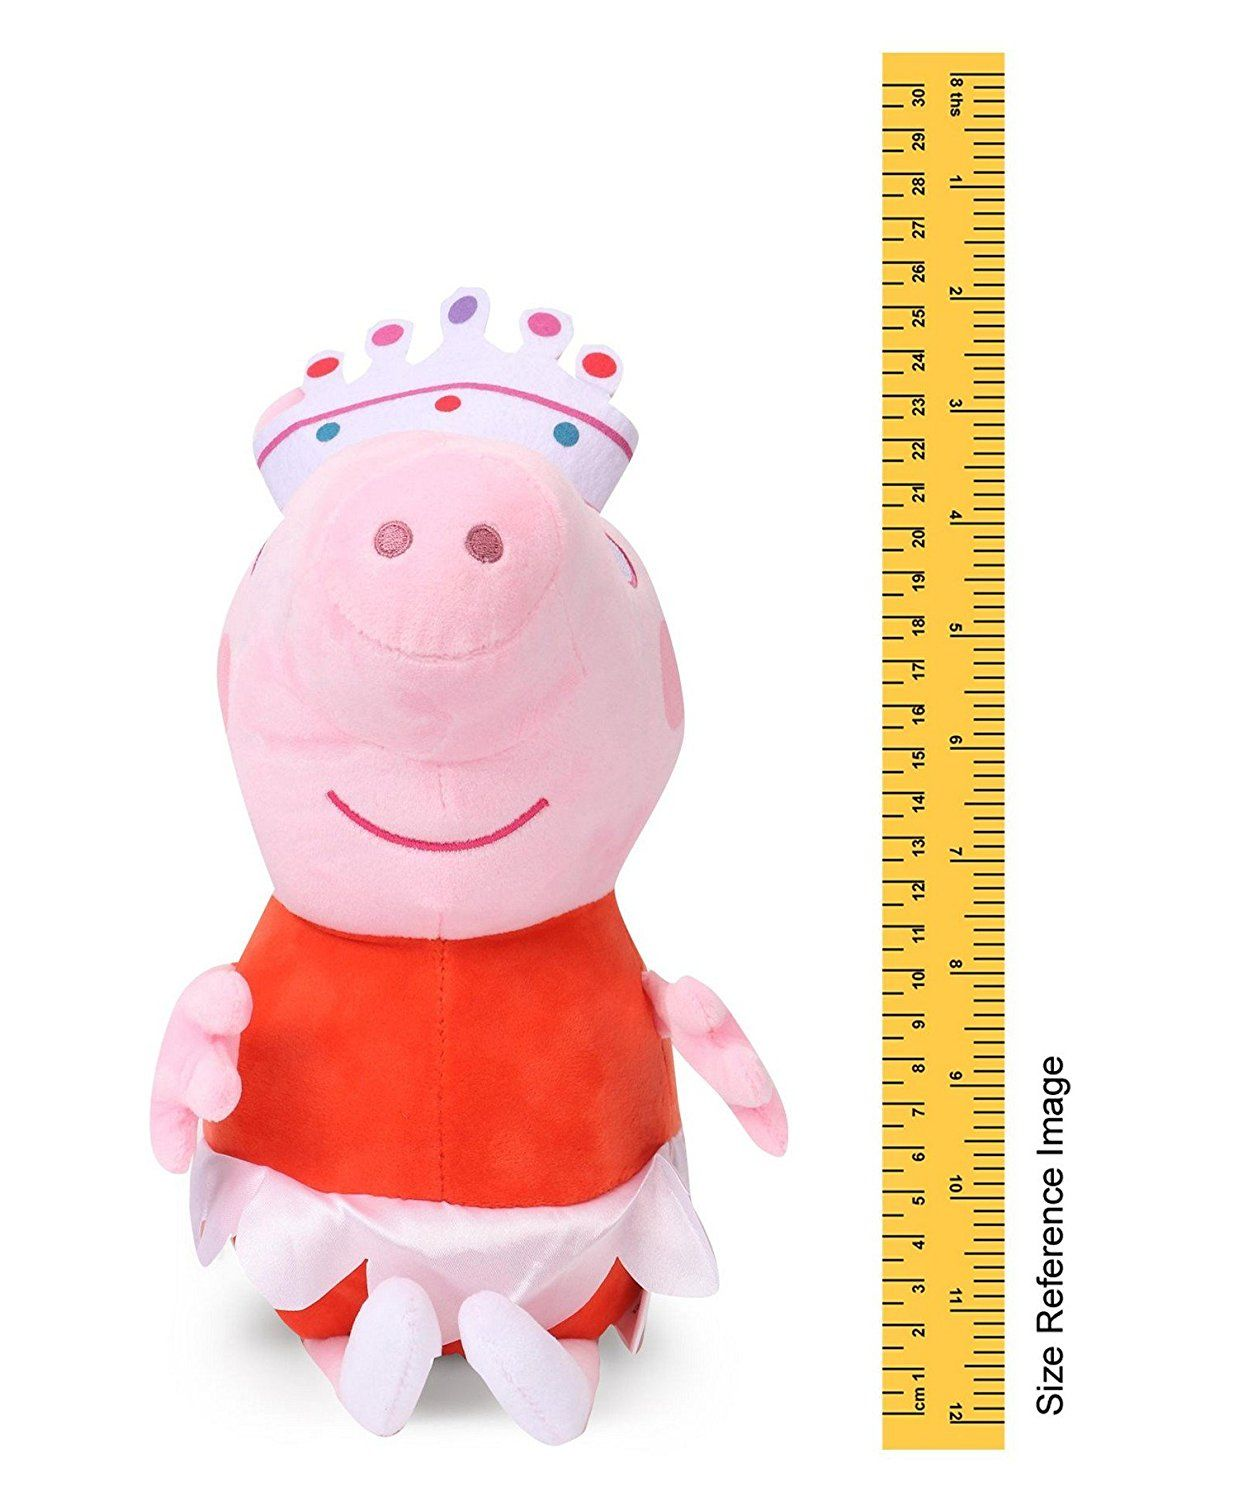 Buy Peppa Pig Plush With Crown Best Price In India Pig Plush Peppa Pig Plush Peppa Pig [ 1500 x 1238 Pixel ]